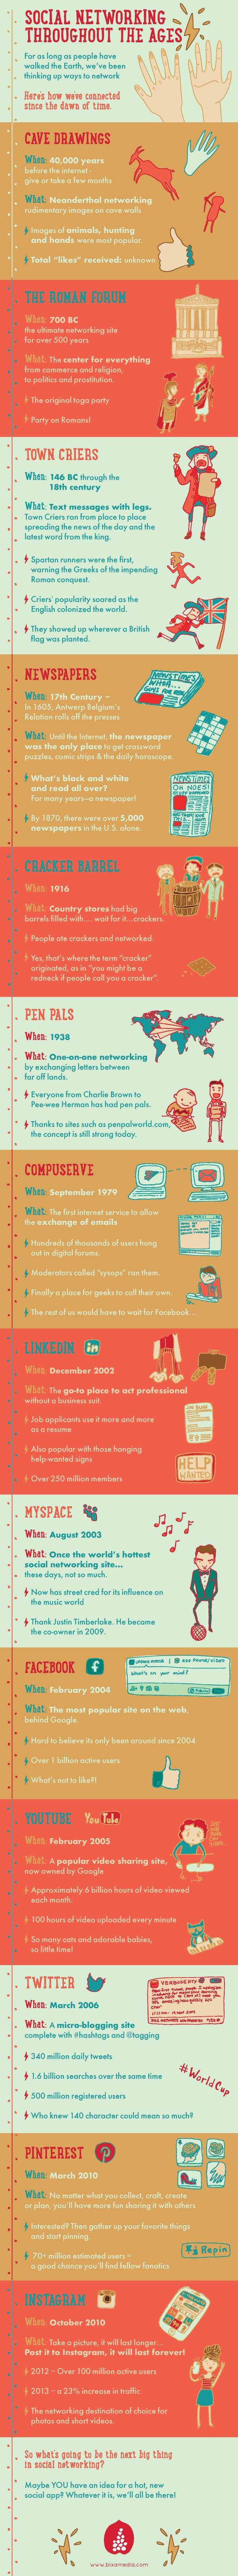 The History Of Social Networking Through The Ages [INFOGRAPHIC]